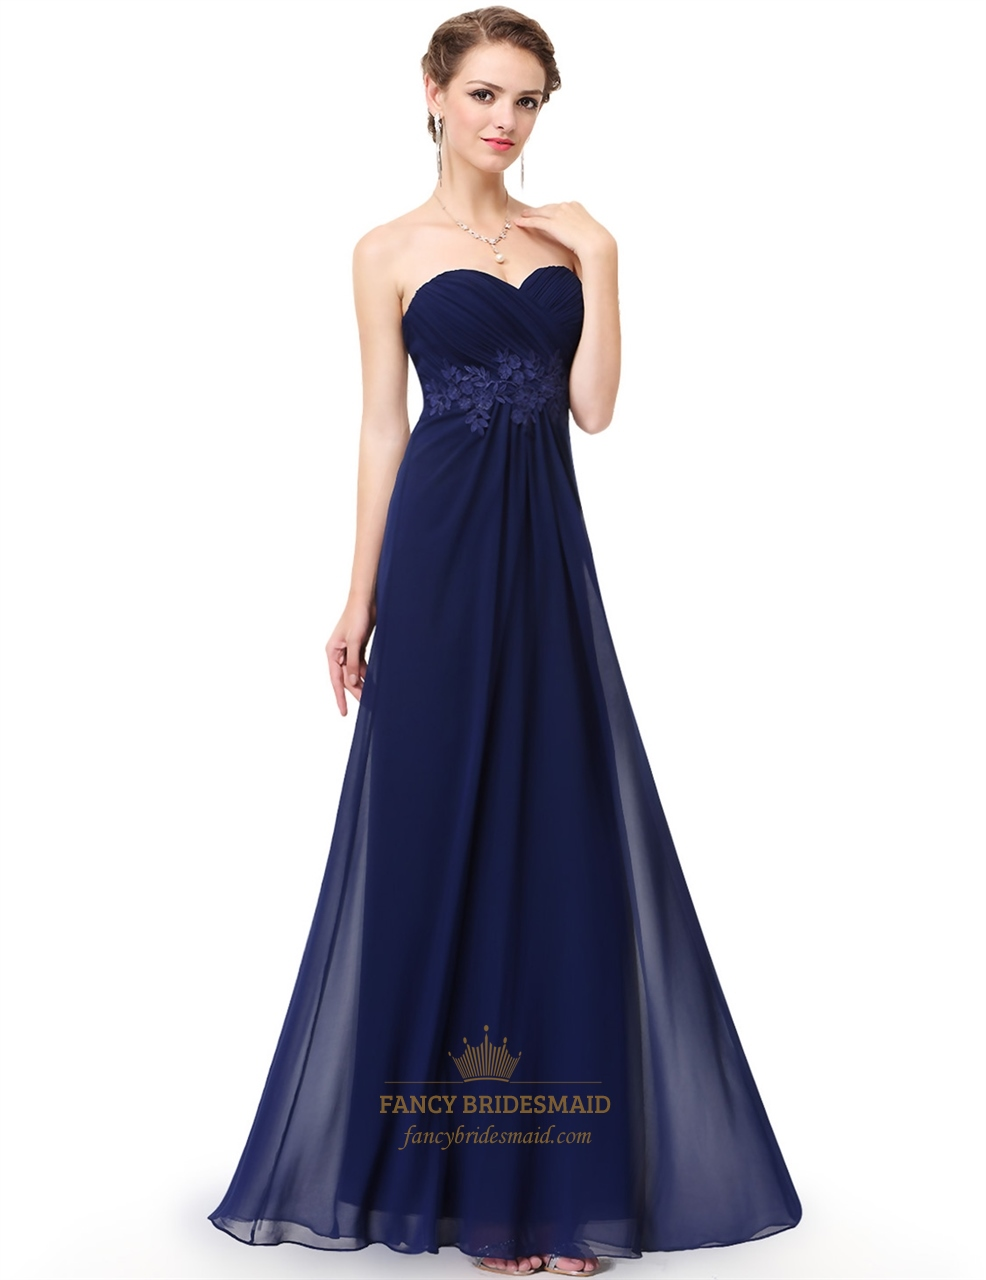 wedding dresses bridesmaid dress and formal dresses In addition to its selection of fashion apparel, activewear and swimwear, camo diva has its own line of affordable (think: under $300—perfect for the bride on a tight budget) formal camo wedding dresses, bridesmaid dresses and accessories.